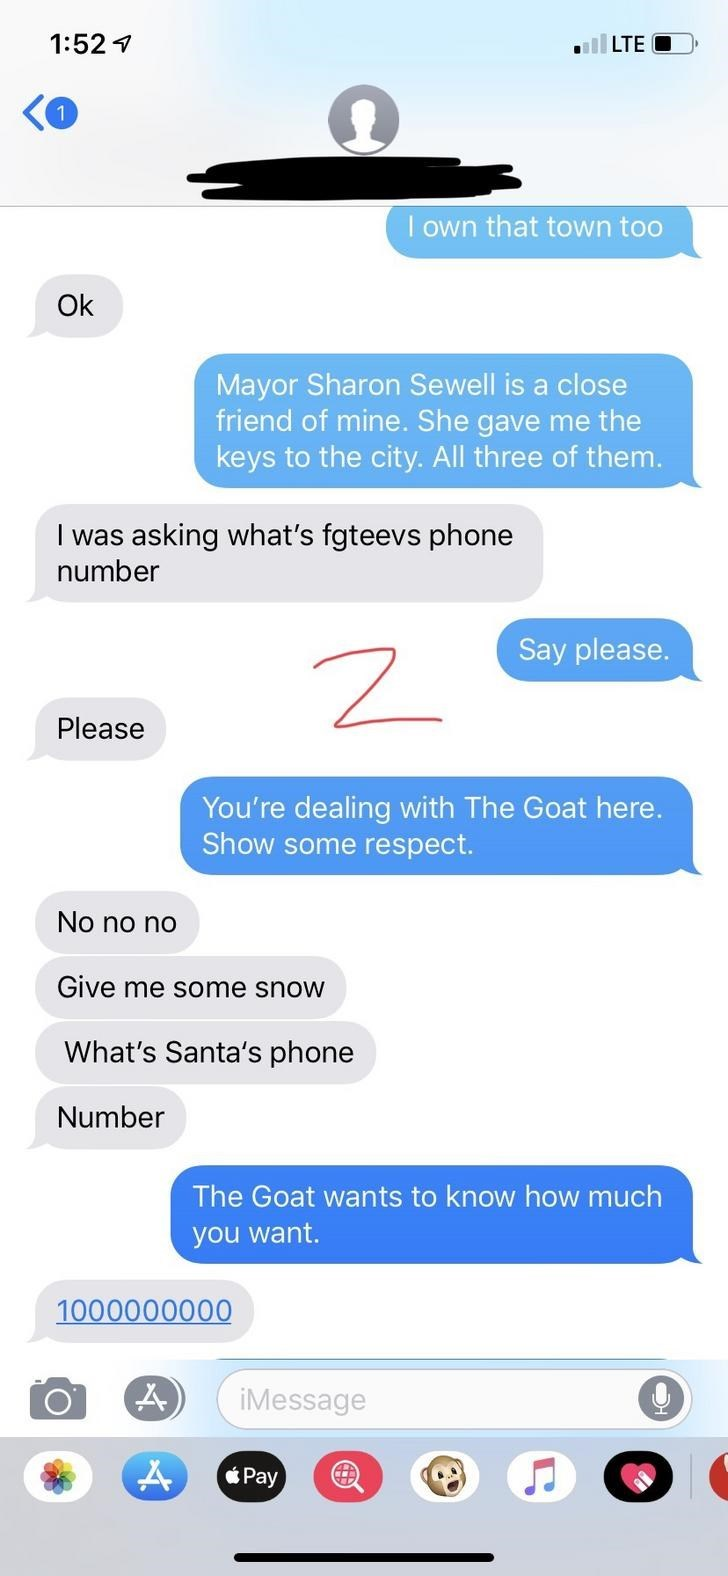 Text - 1:52 1 LTE O I own that town too Ok Mayor Sharon Sewell is a close friend of mine. She gave me the keys to the city. All three of them. I was asking what's fgteevs phone number Say please. Please You're dealing with The Goat here. Show some respect. No no no Give me some snow What's Santa's phone Number The Goat wants to know how much you want. 1000000000 iMessage Pay